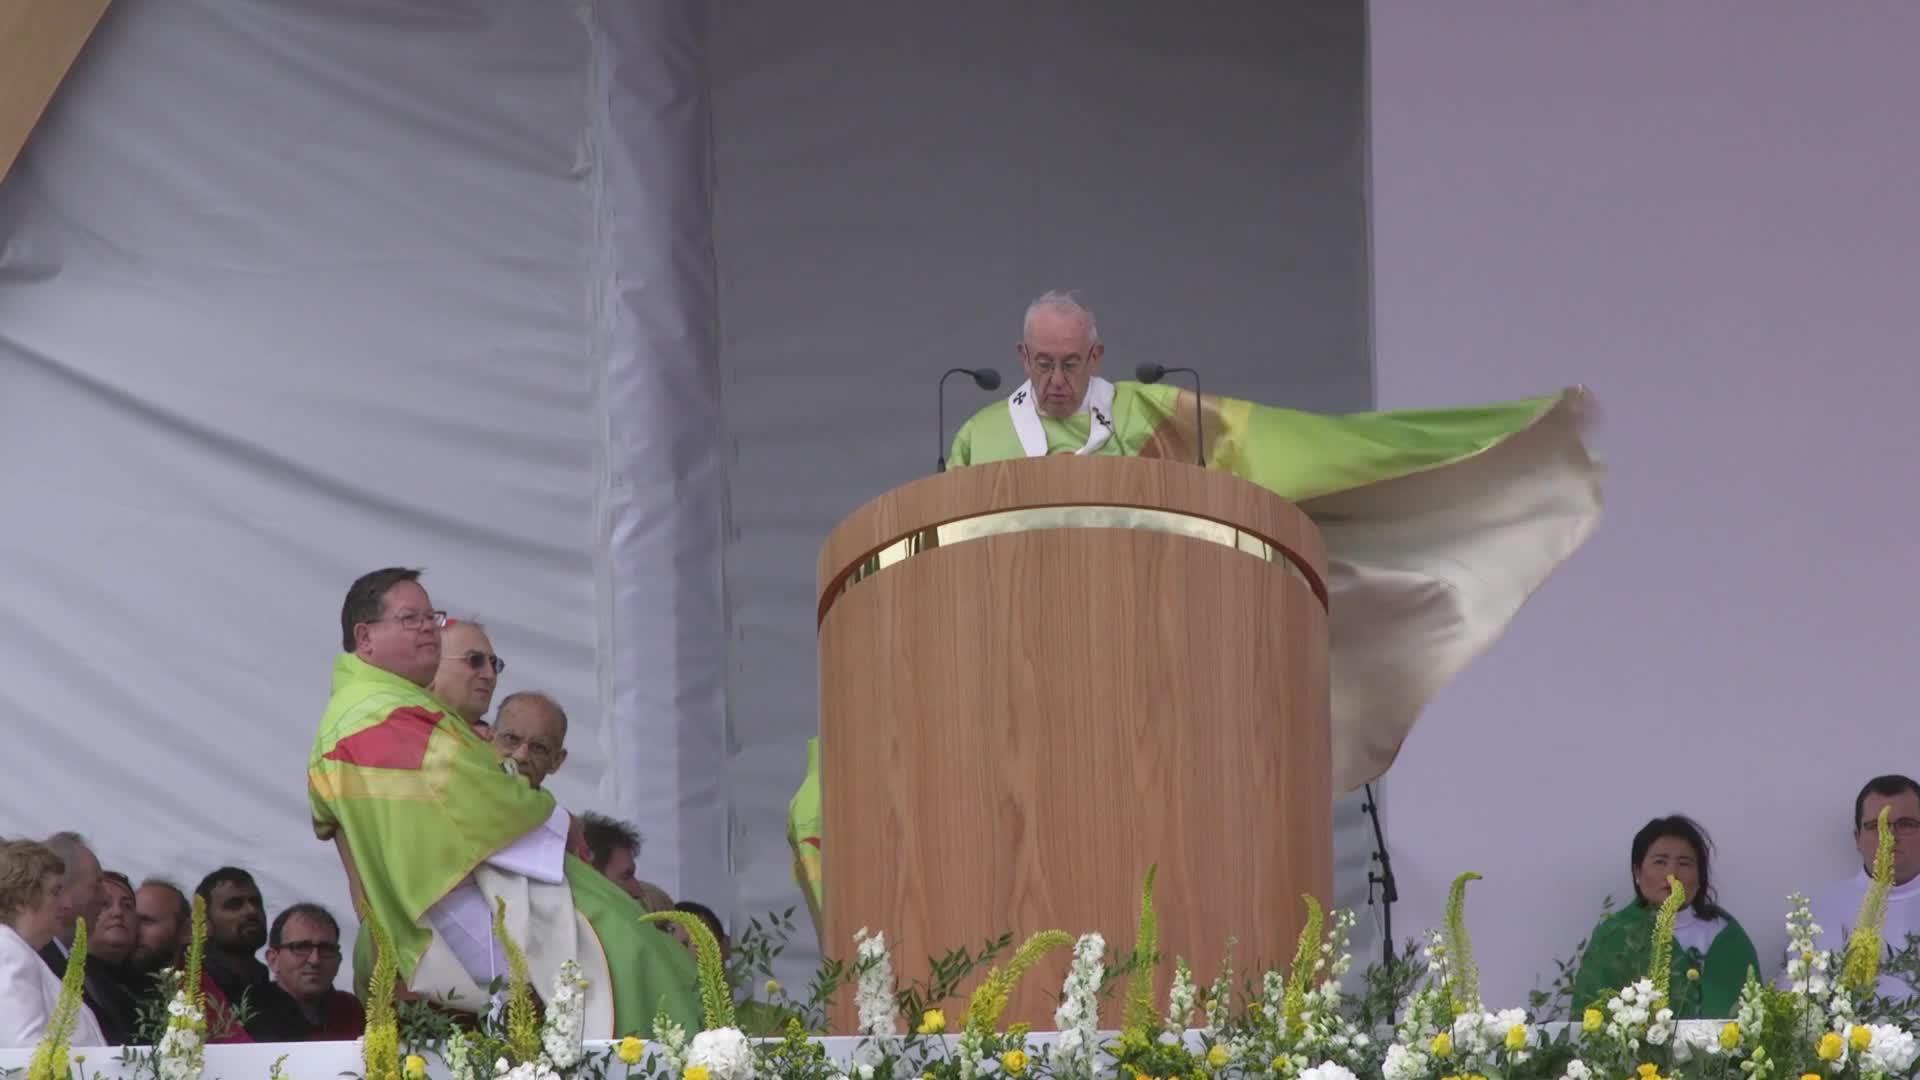 Video: The Pope lead Mass in Ireland